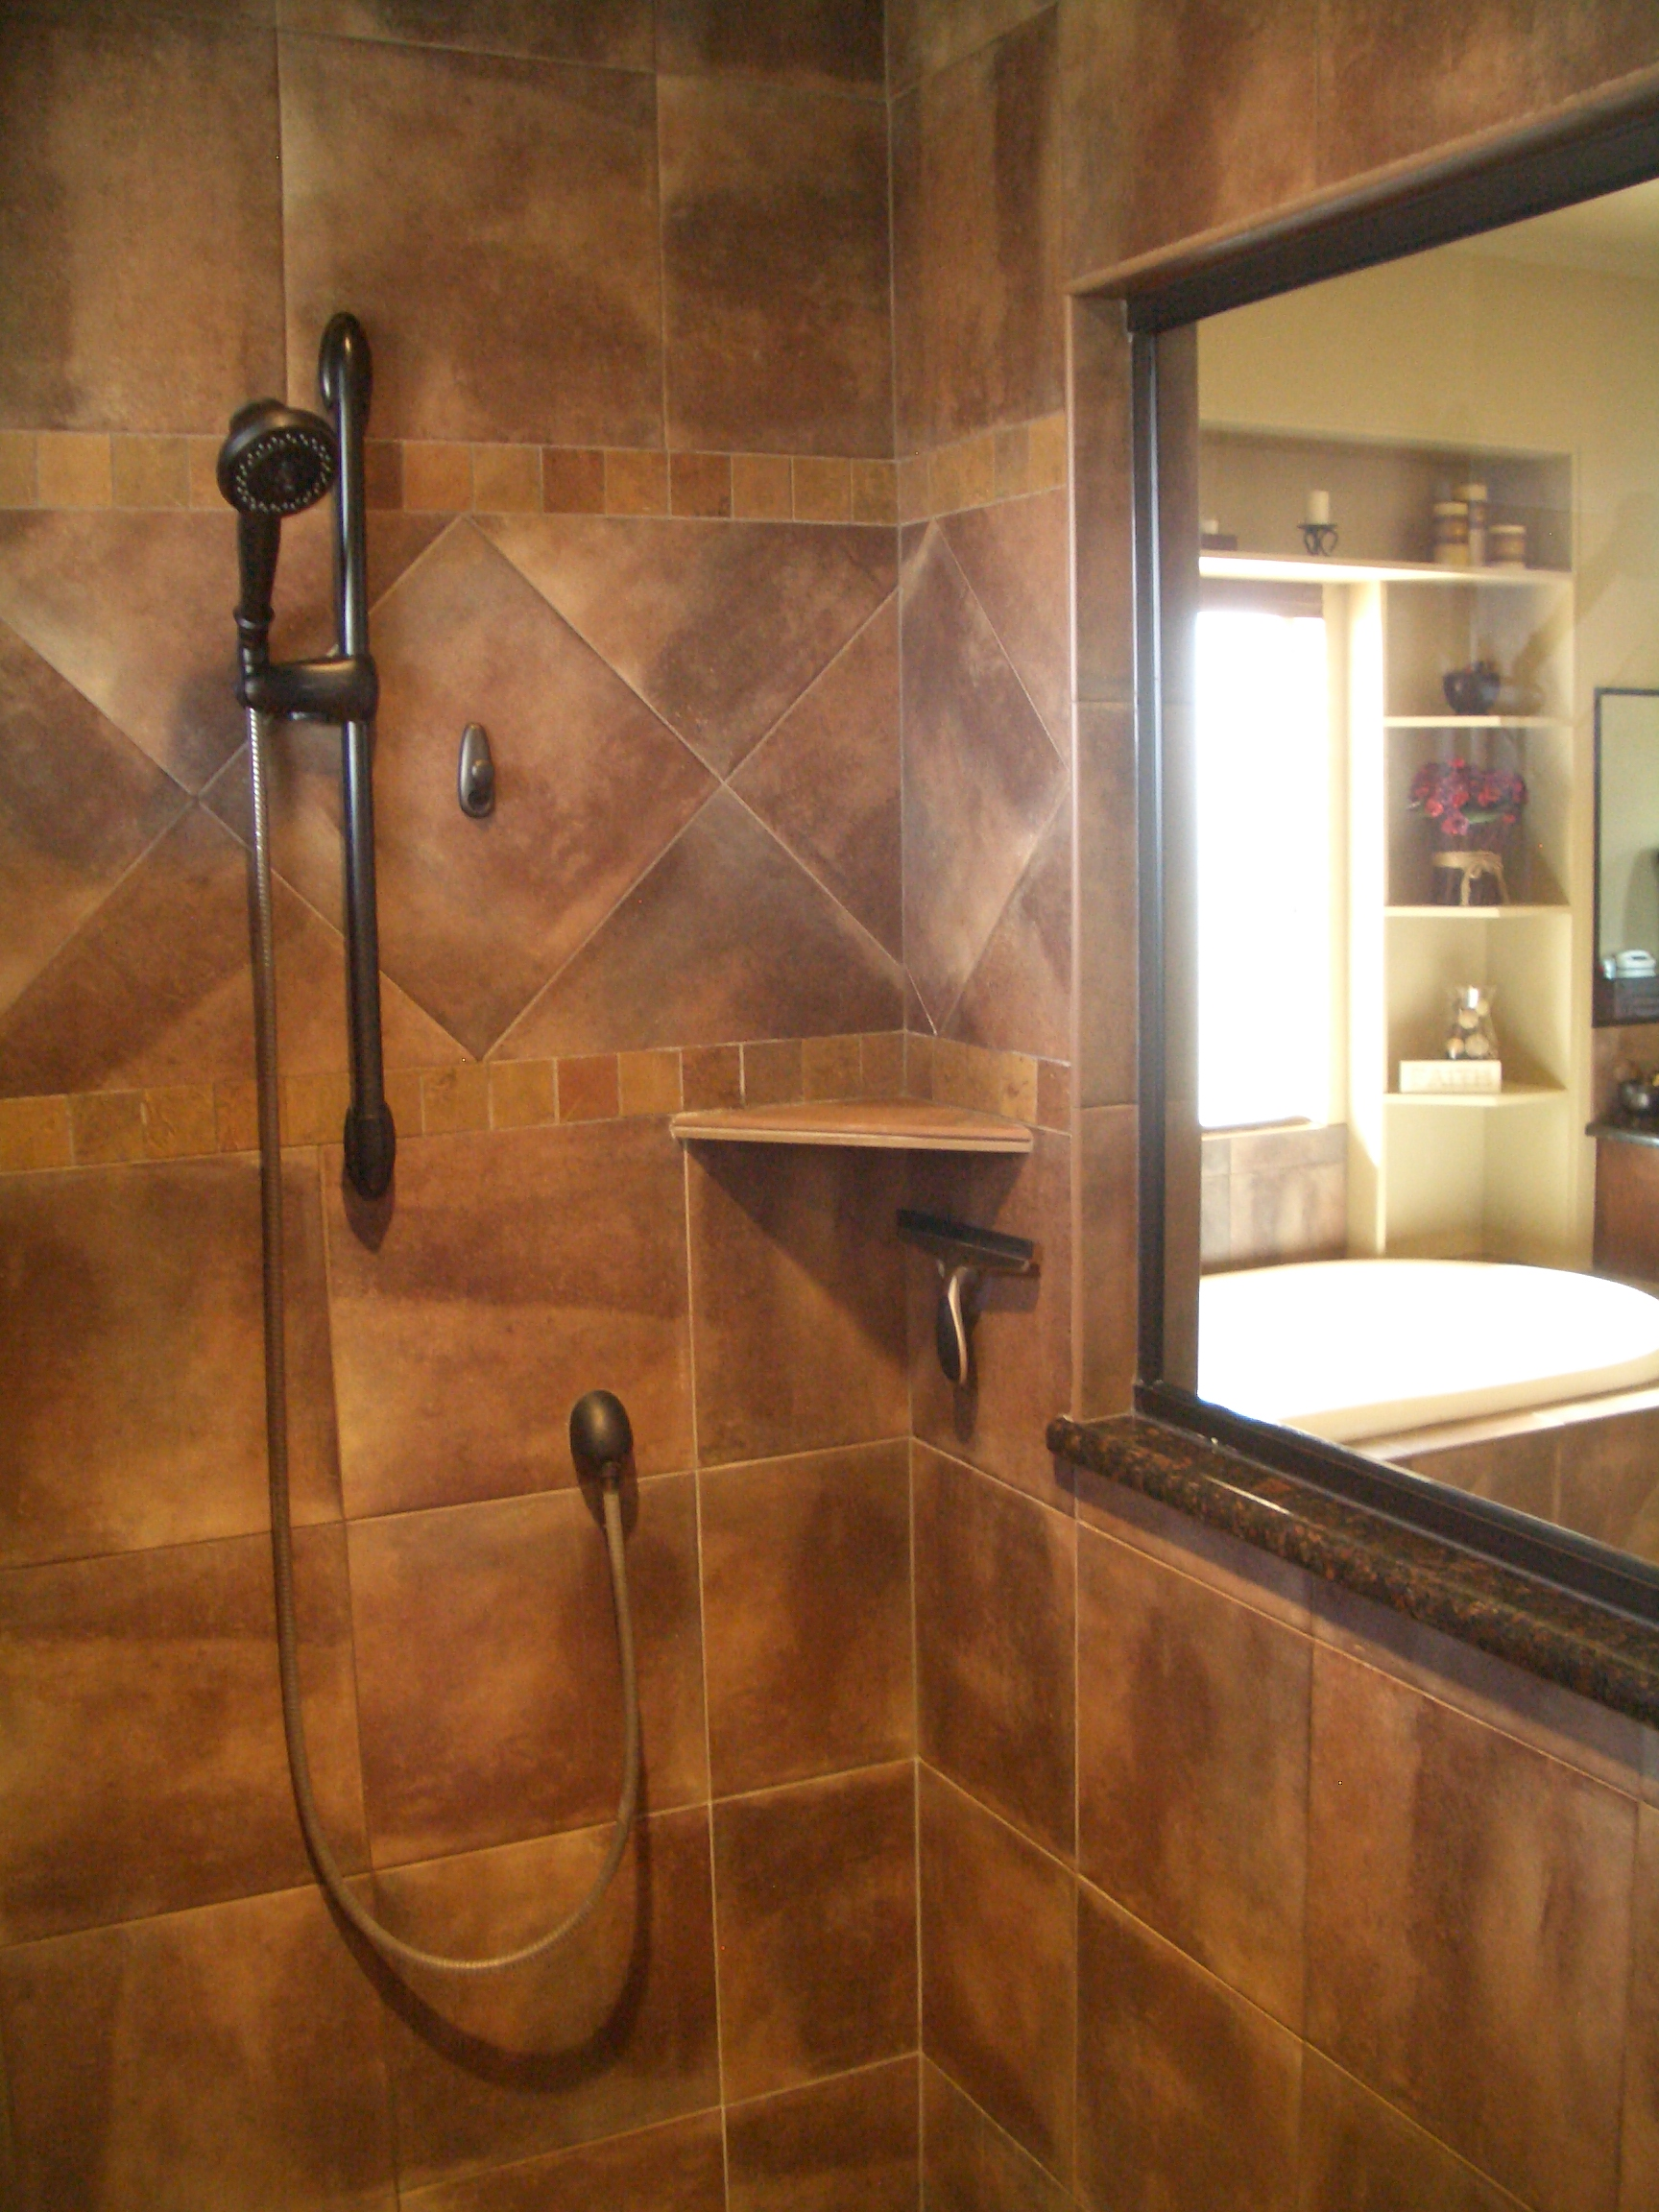 Shower Upgrade Options: tile a shower